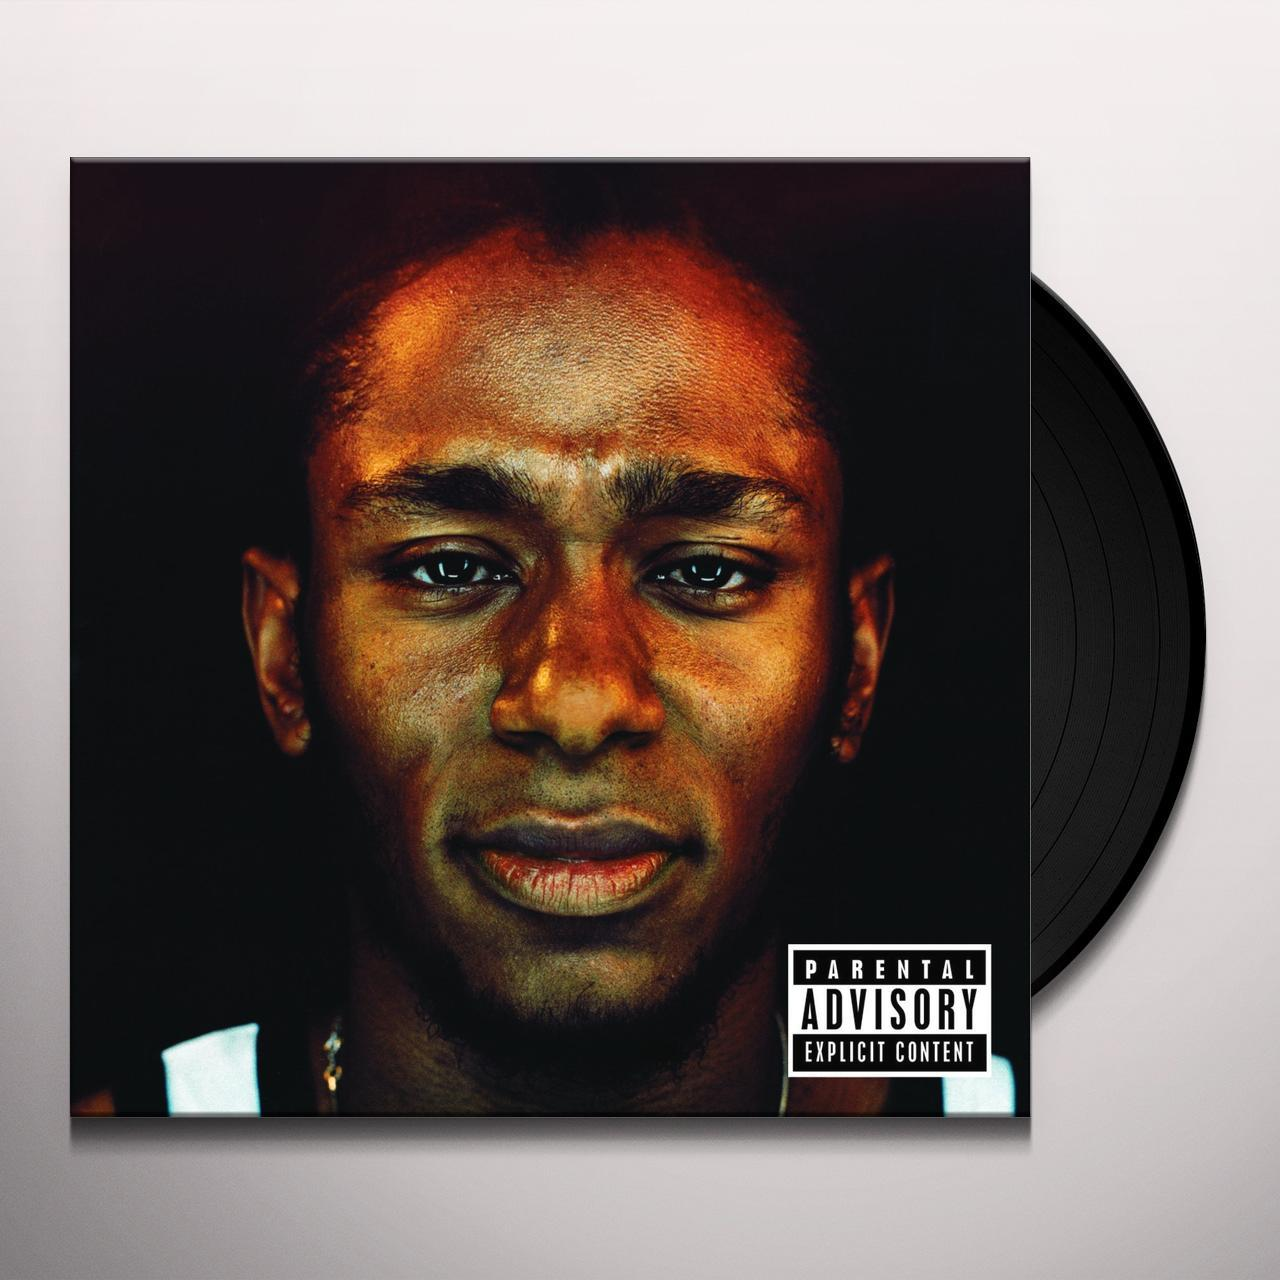 Remarkable, mos def albums